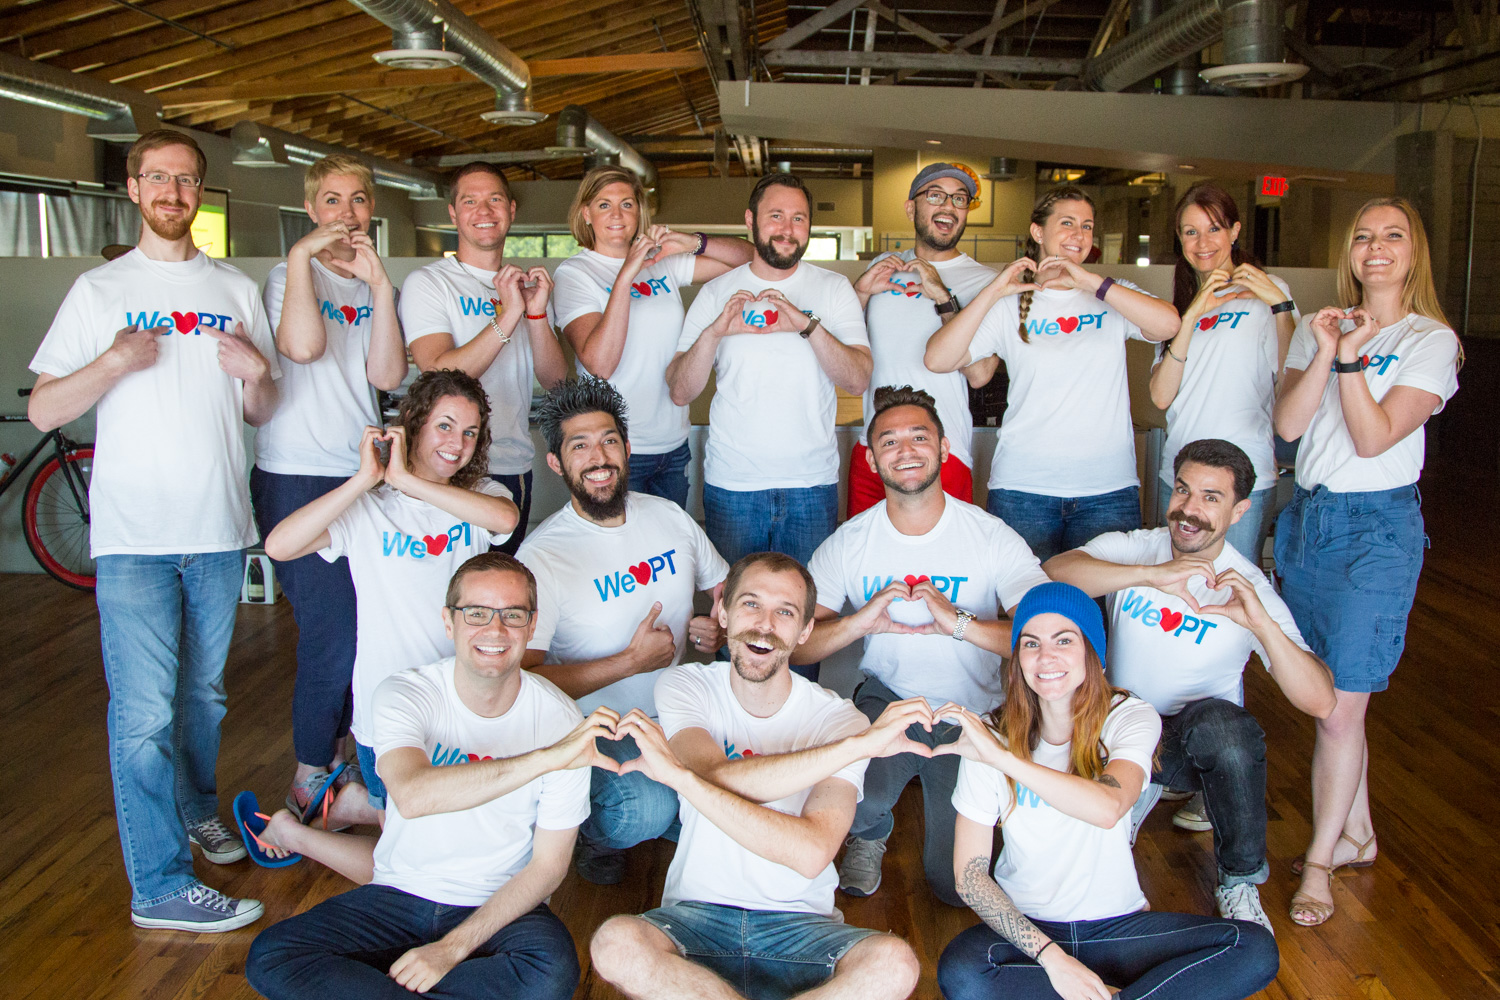 The WebPT marketing team answers your questions! (Photo Credit: WebPT)